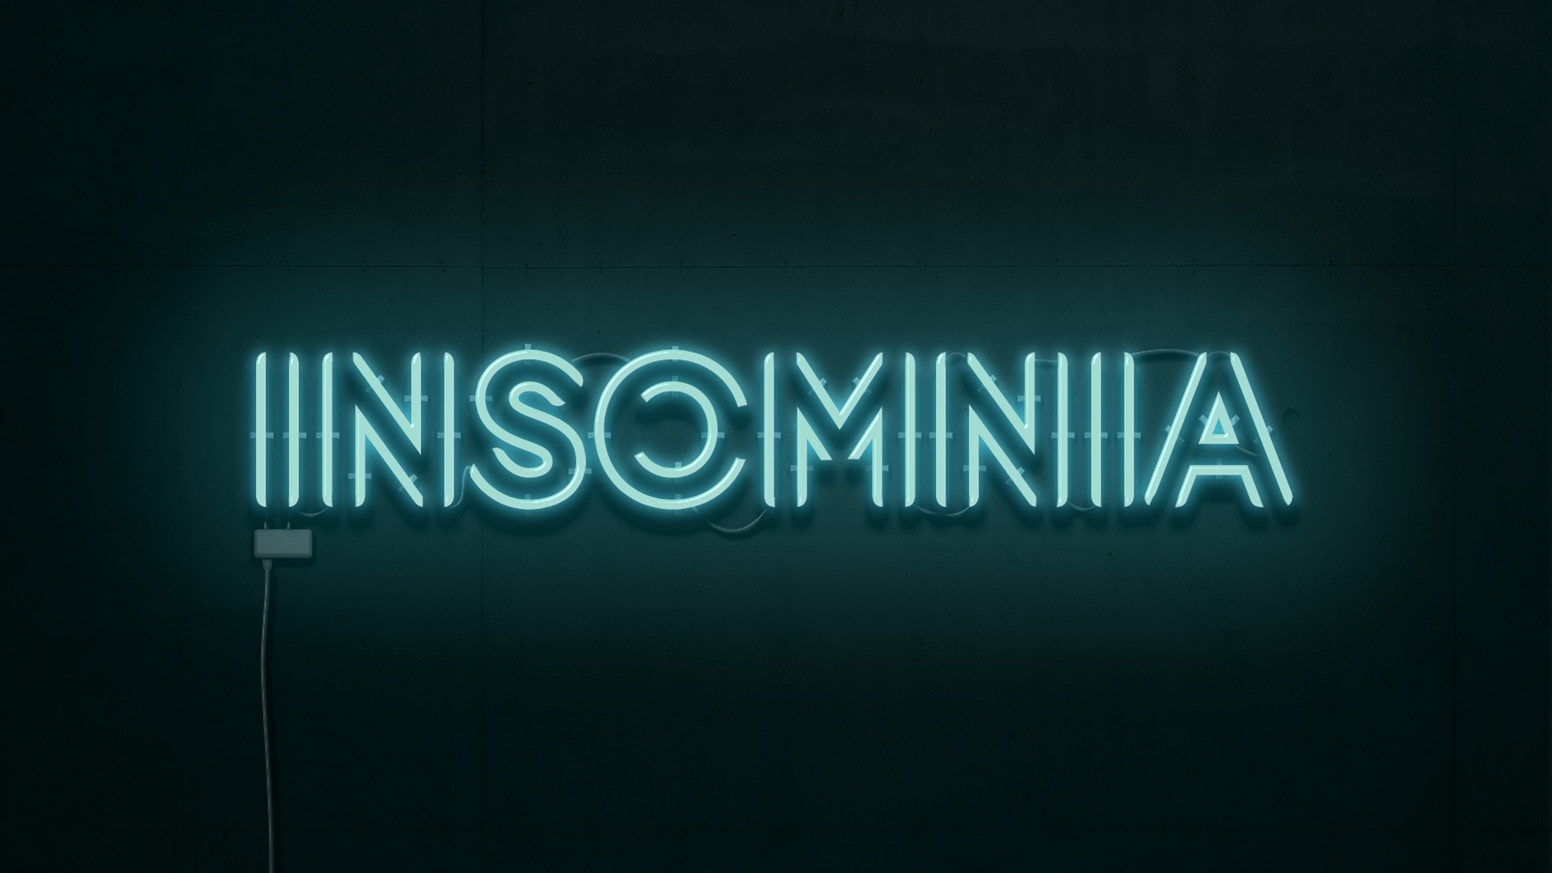 Recovering Insomniac